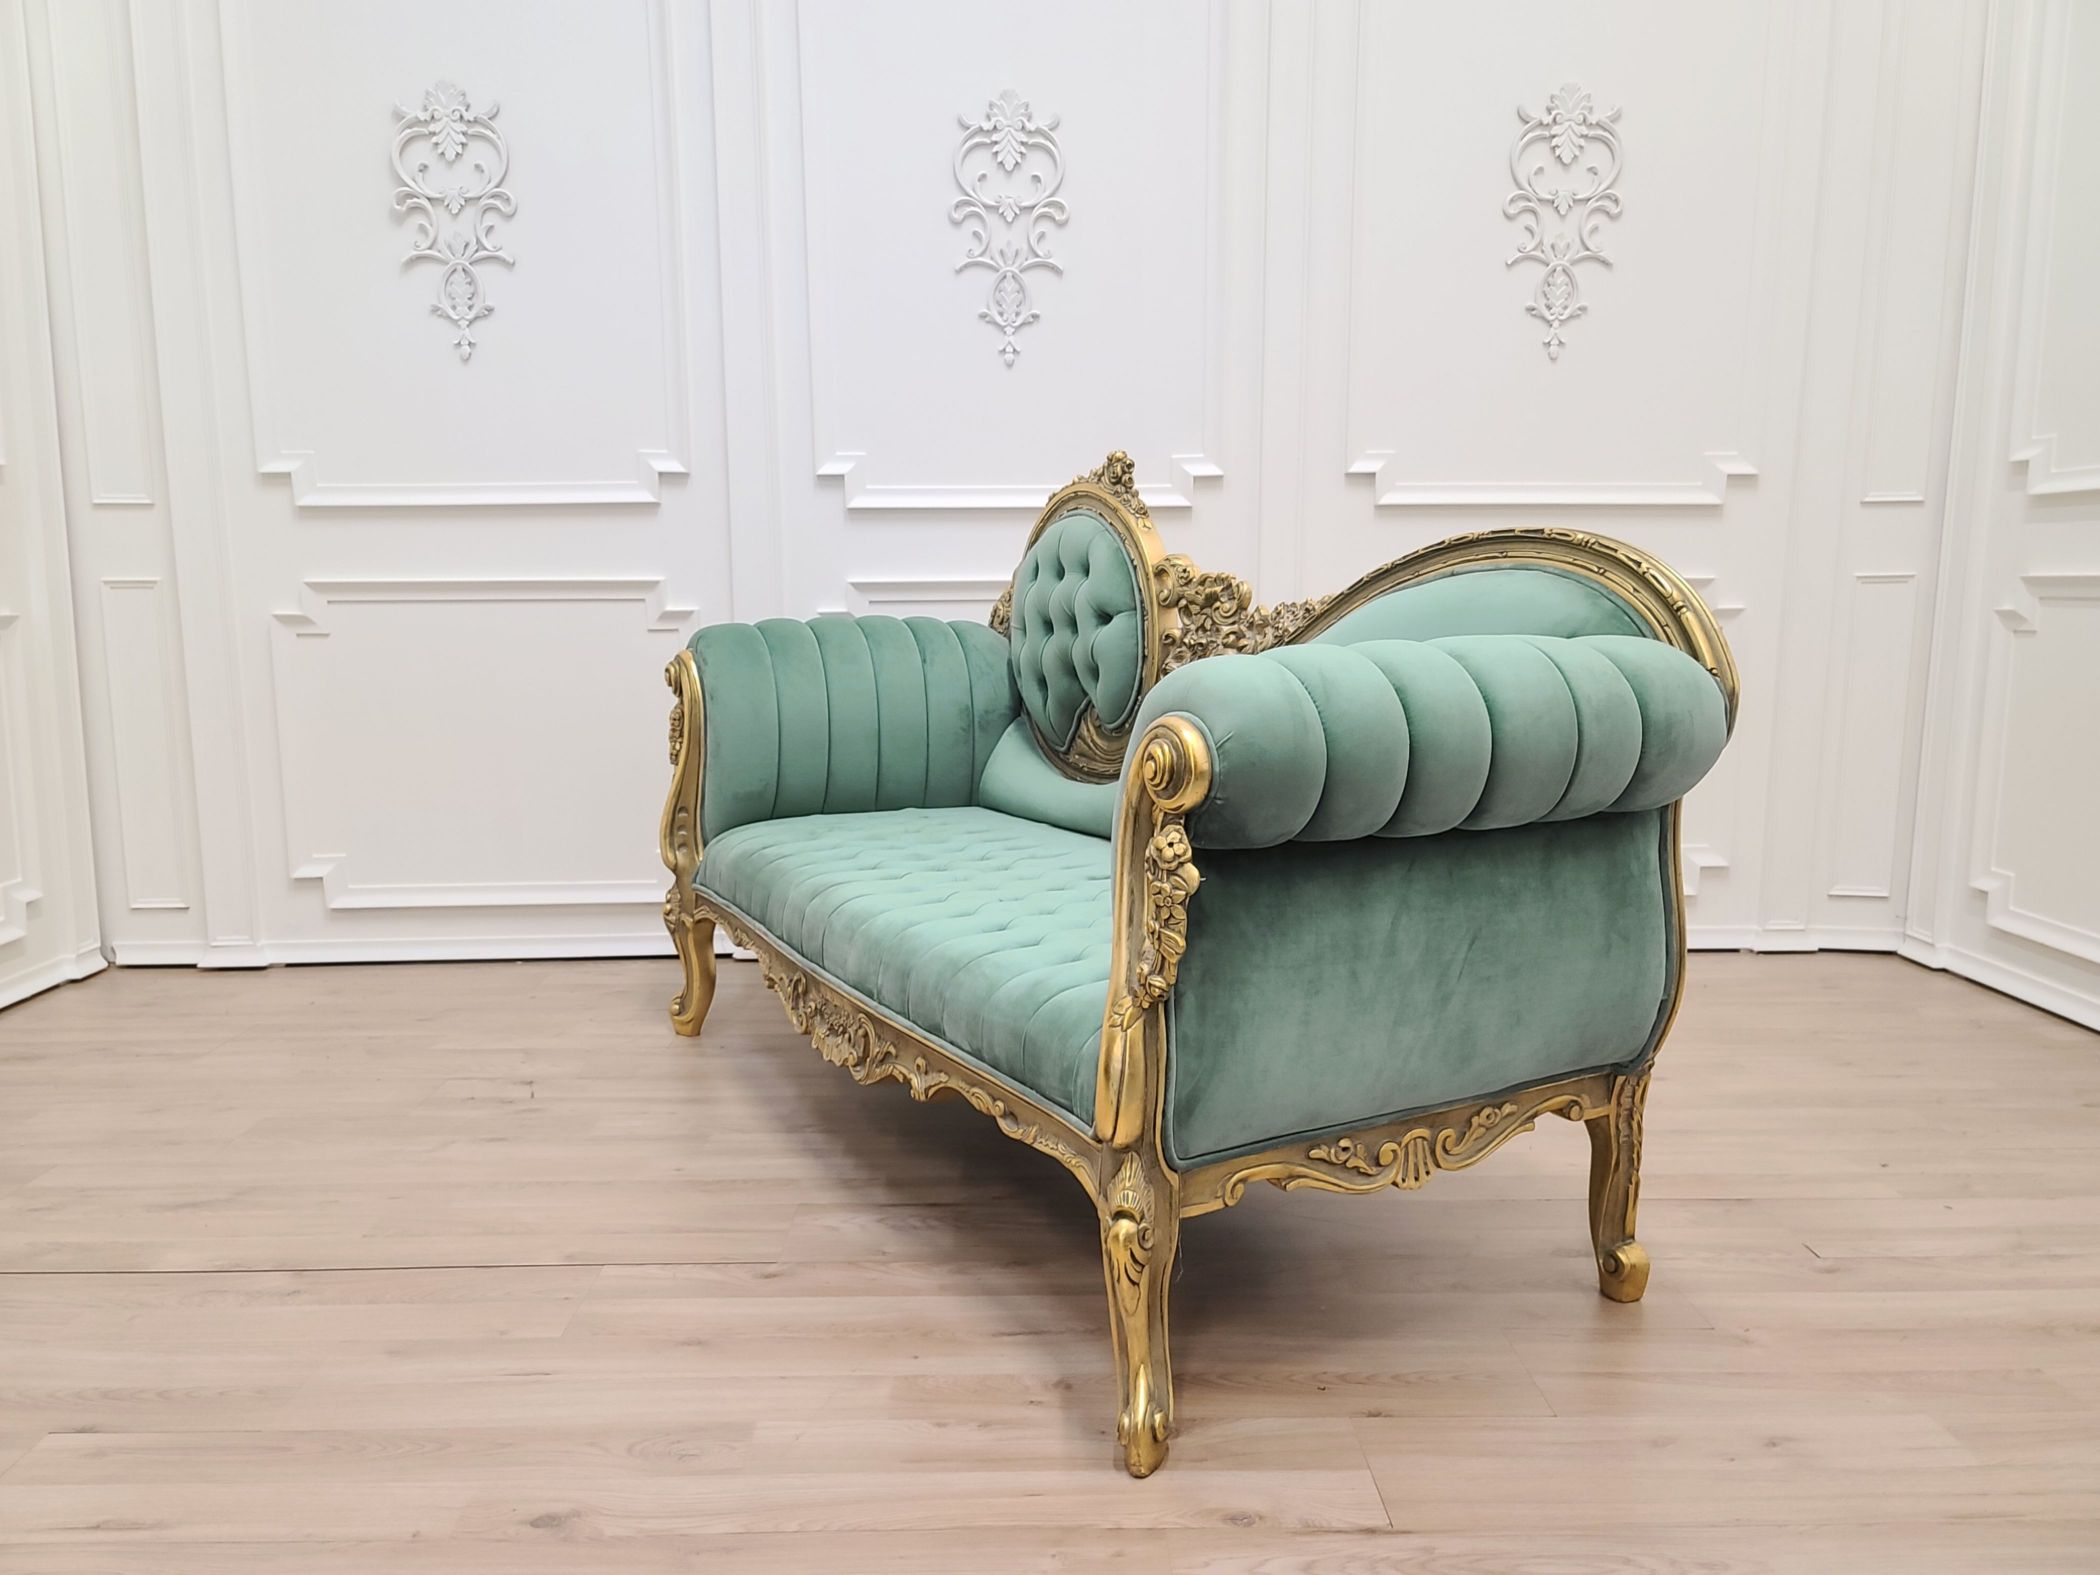 MADE TO ORDER / Victorian Chaise Lounge/Gold Leaf Hand/Carved Frame/Tufted Emerald Green Velvet, Chaise Lounge